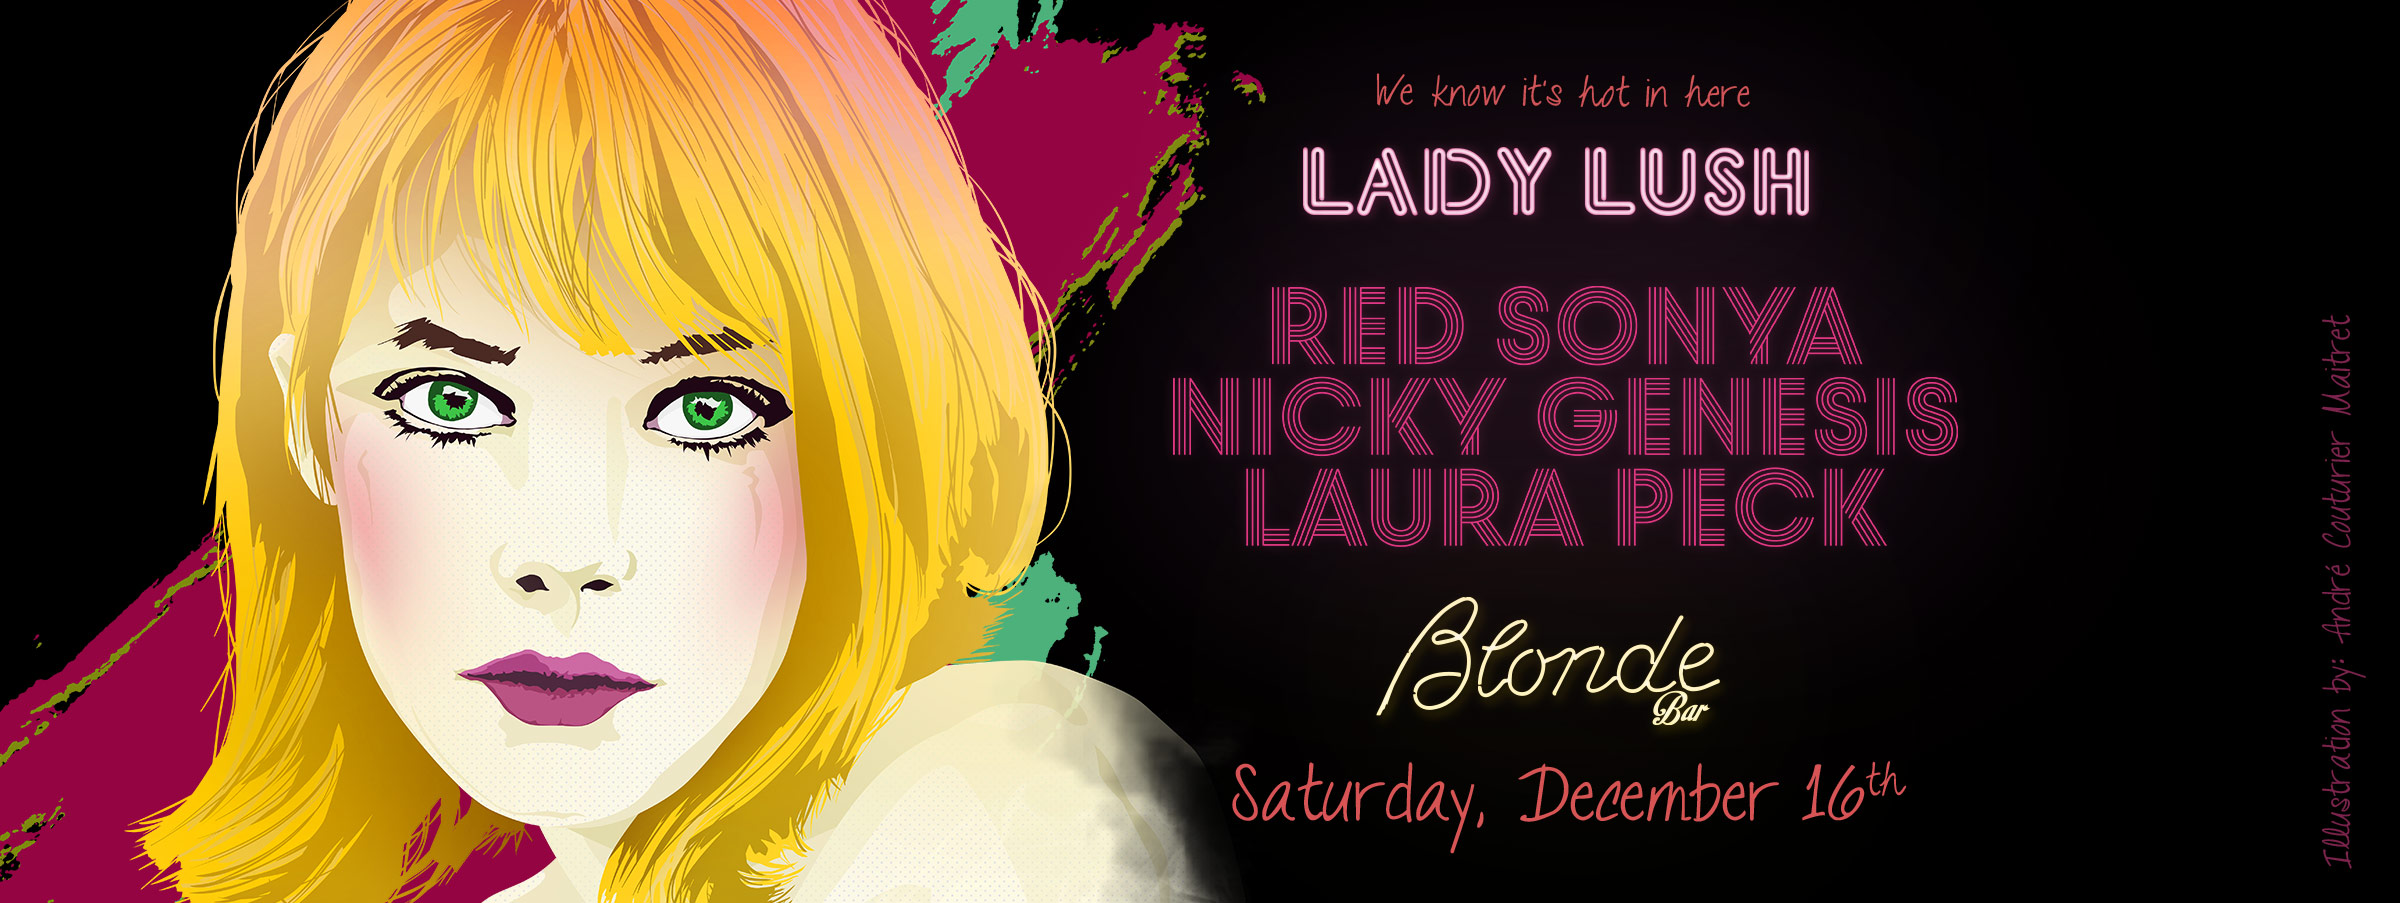 Lady Lush Holiday Party